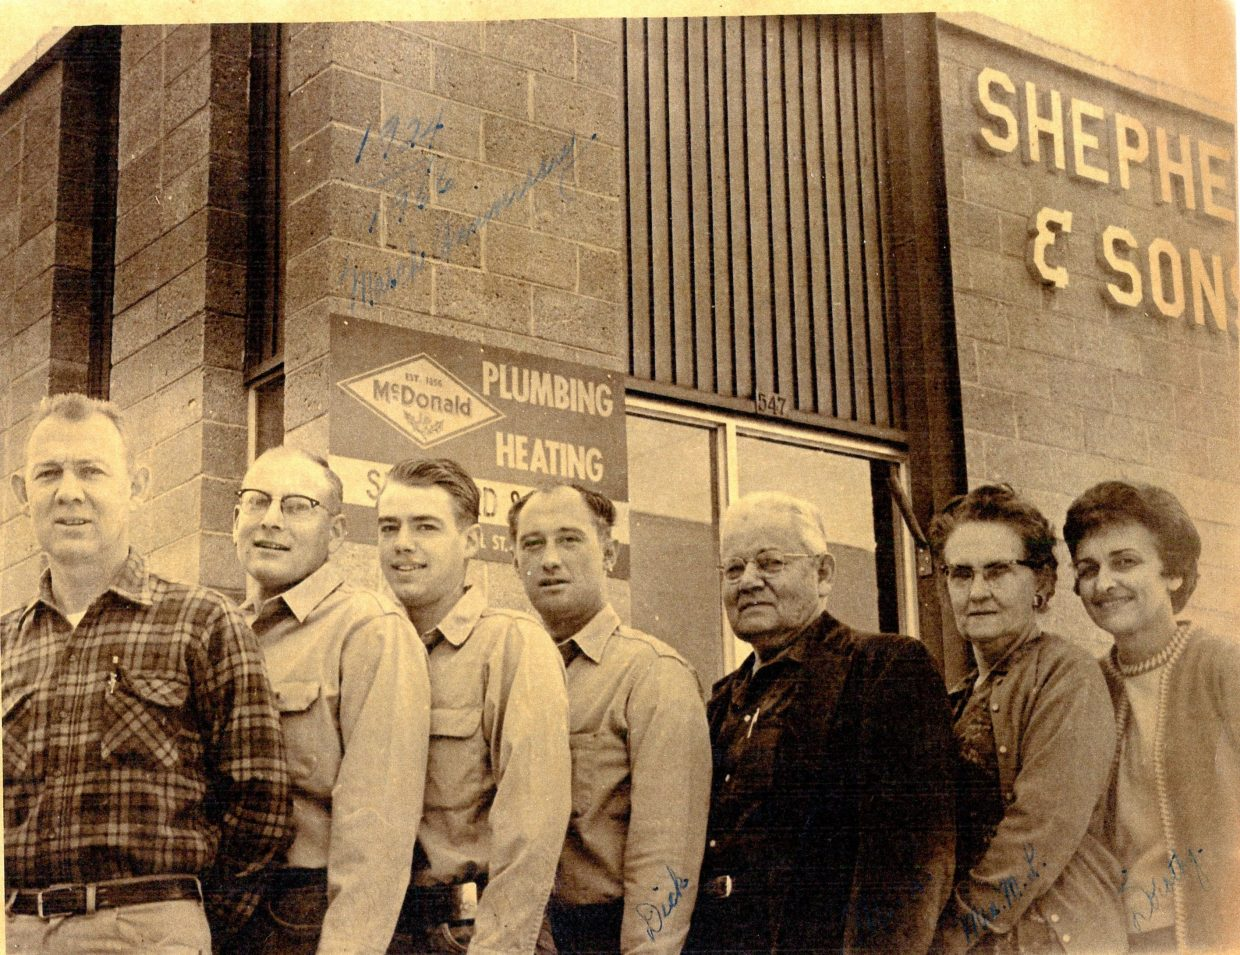 A photocopy of a photograph taken March 1966 on the 42nd anniversary of M.L. Shepherd & Sons Plumbing, Heating and Sheet Metal Business. Pictured, from left, are James L. Shepherd and Albert M. Shepherd (sons of Mark L. Shepherd), employee George Bauer and employee Dick Harris; original owner Mark L. Shepherd, his wife Elda M. Shepherd, and bookkeeper Dorothy Cobb.